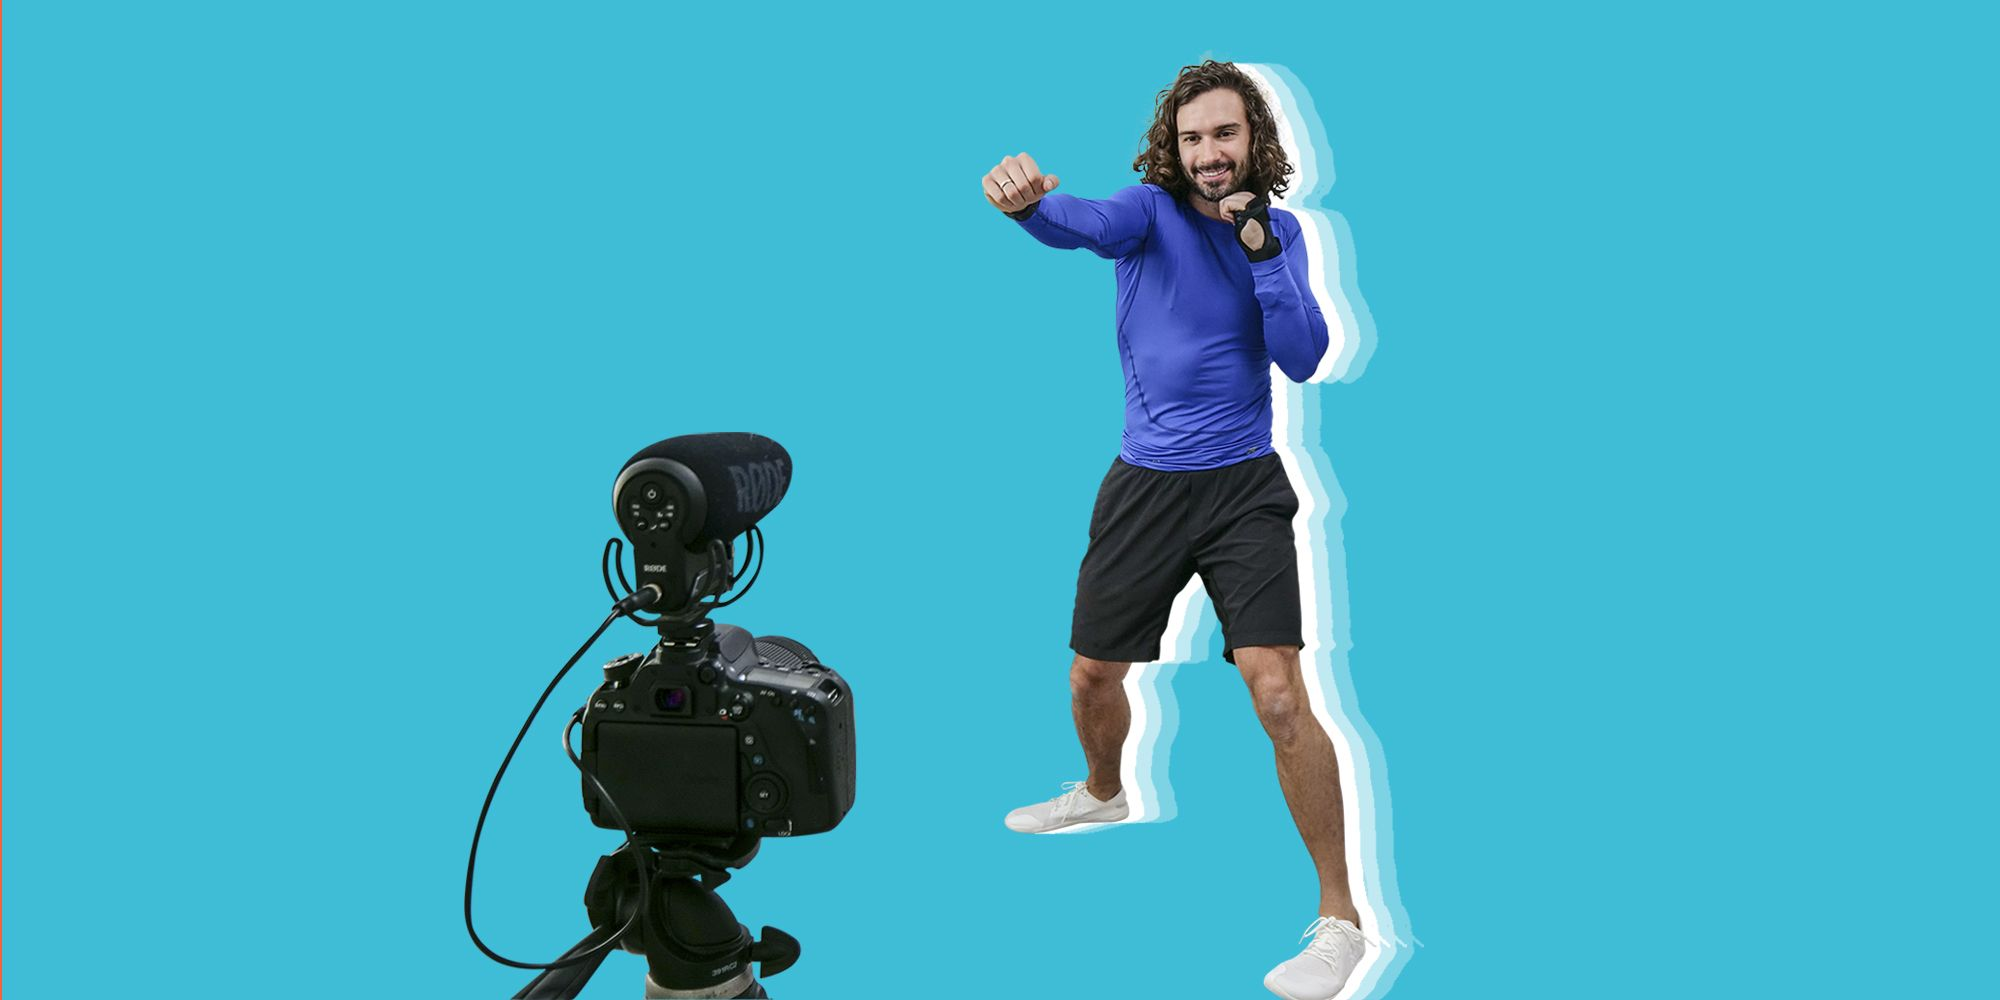 Joe Wicks Hiit Workout Plan 14 Day Shred Home Workout Plan